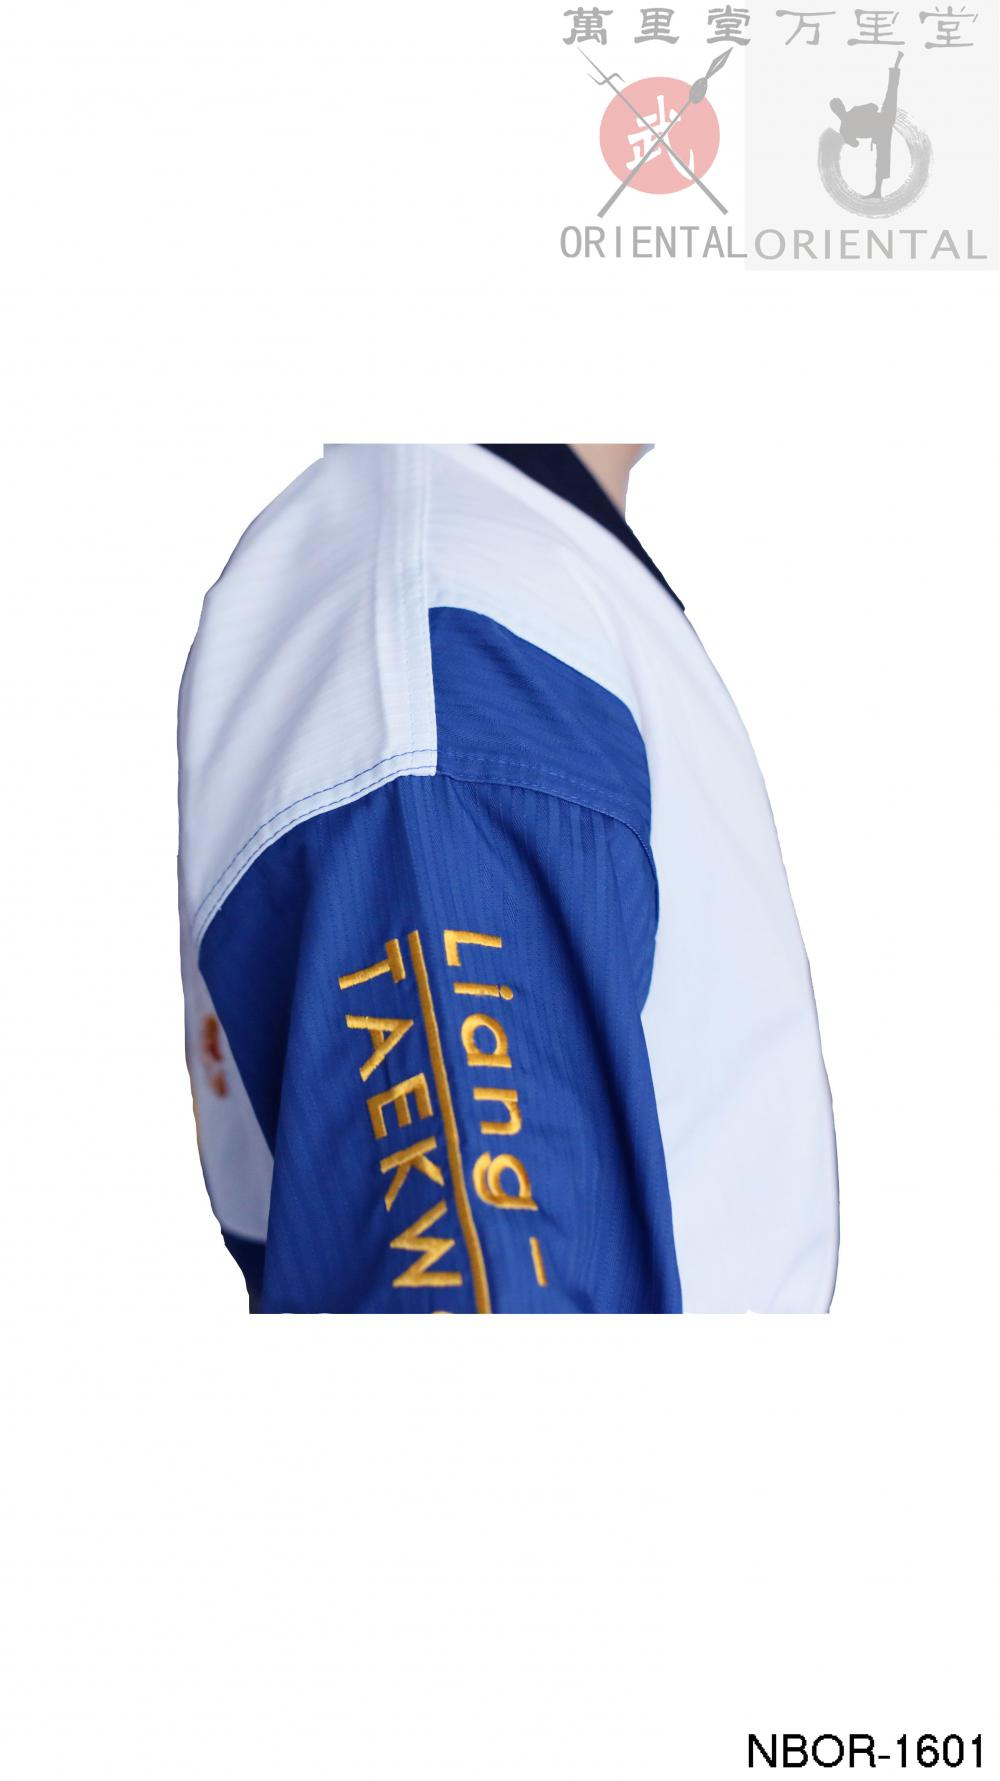 taekwondo training performance dress